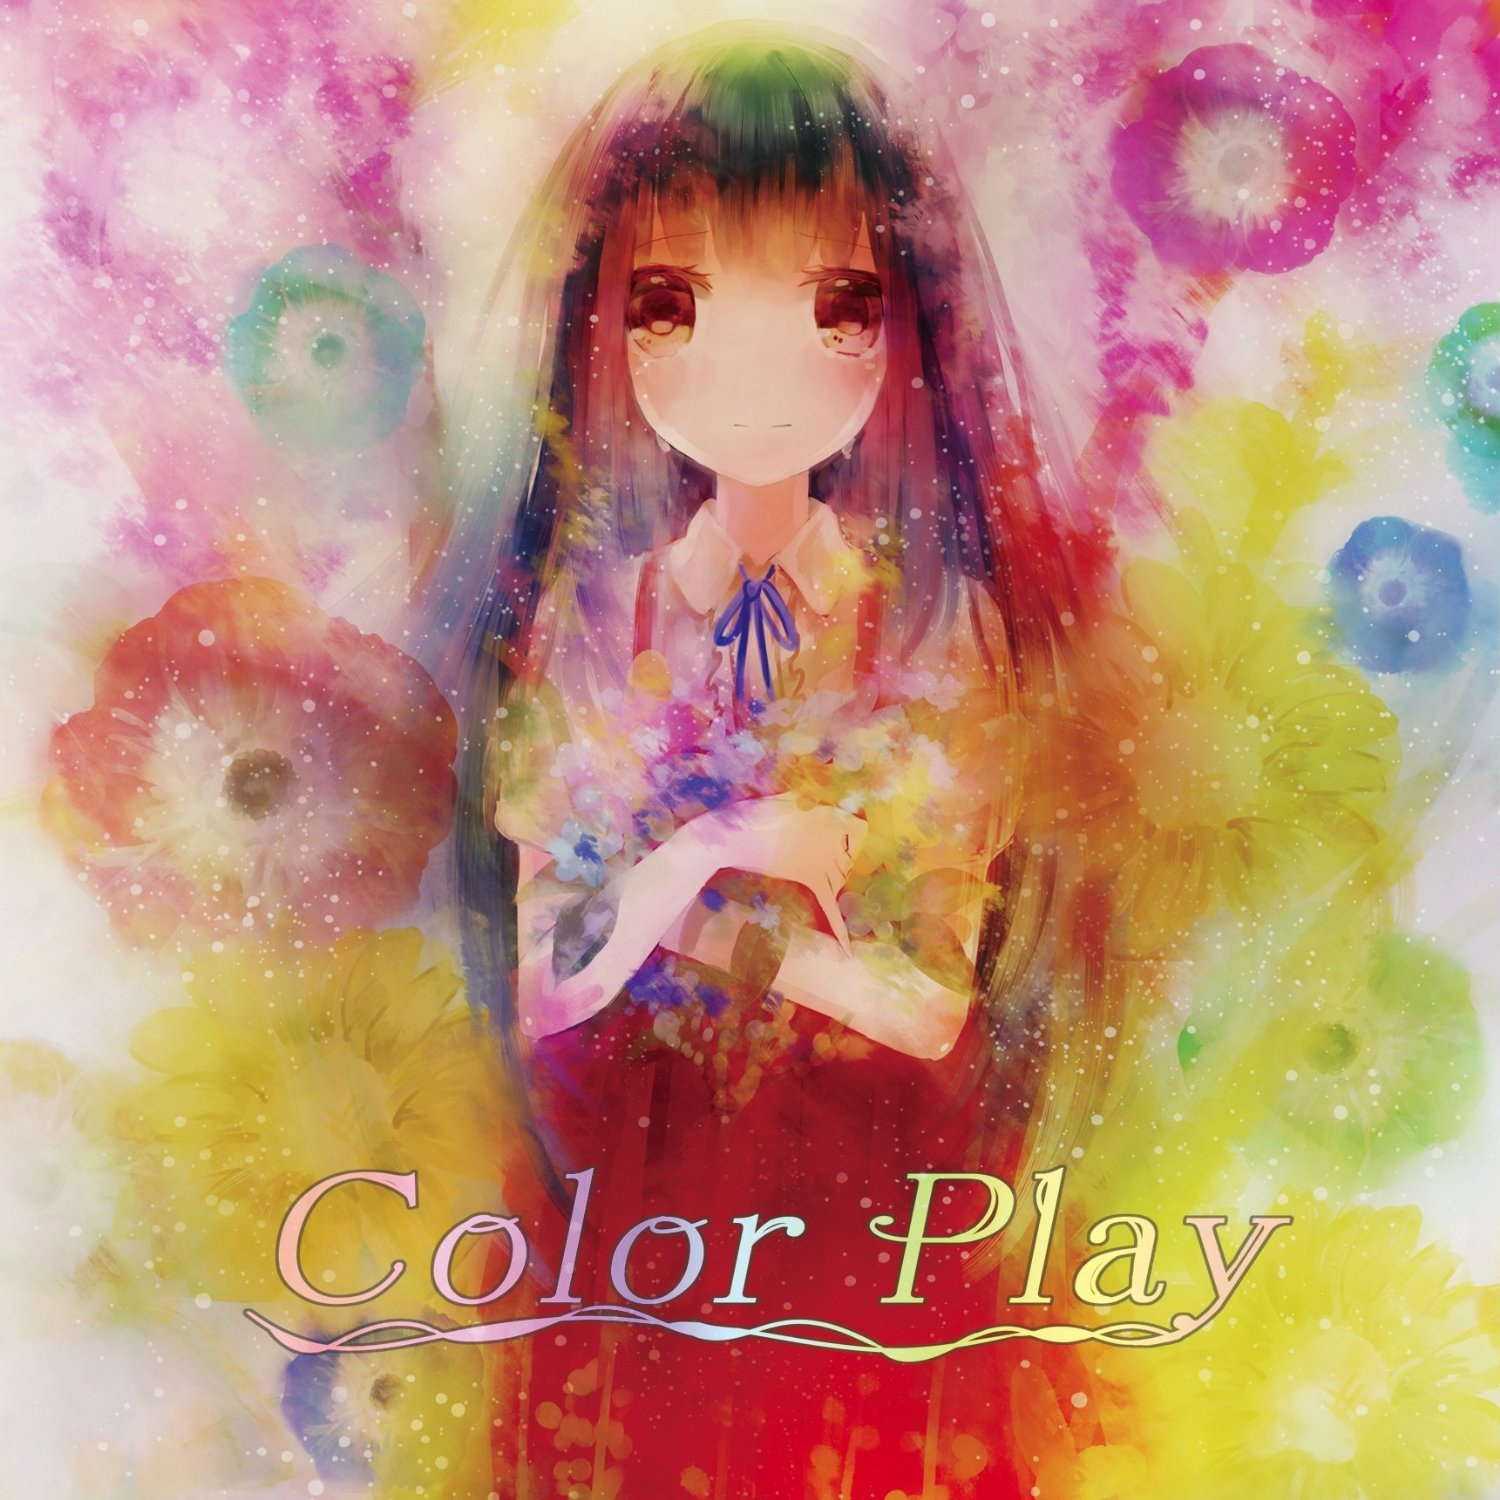 Image Color Play Vocaloid Wiki Fandom Powered By Wikia The Colorplay